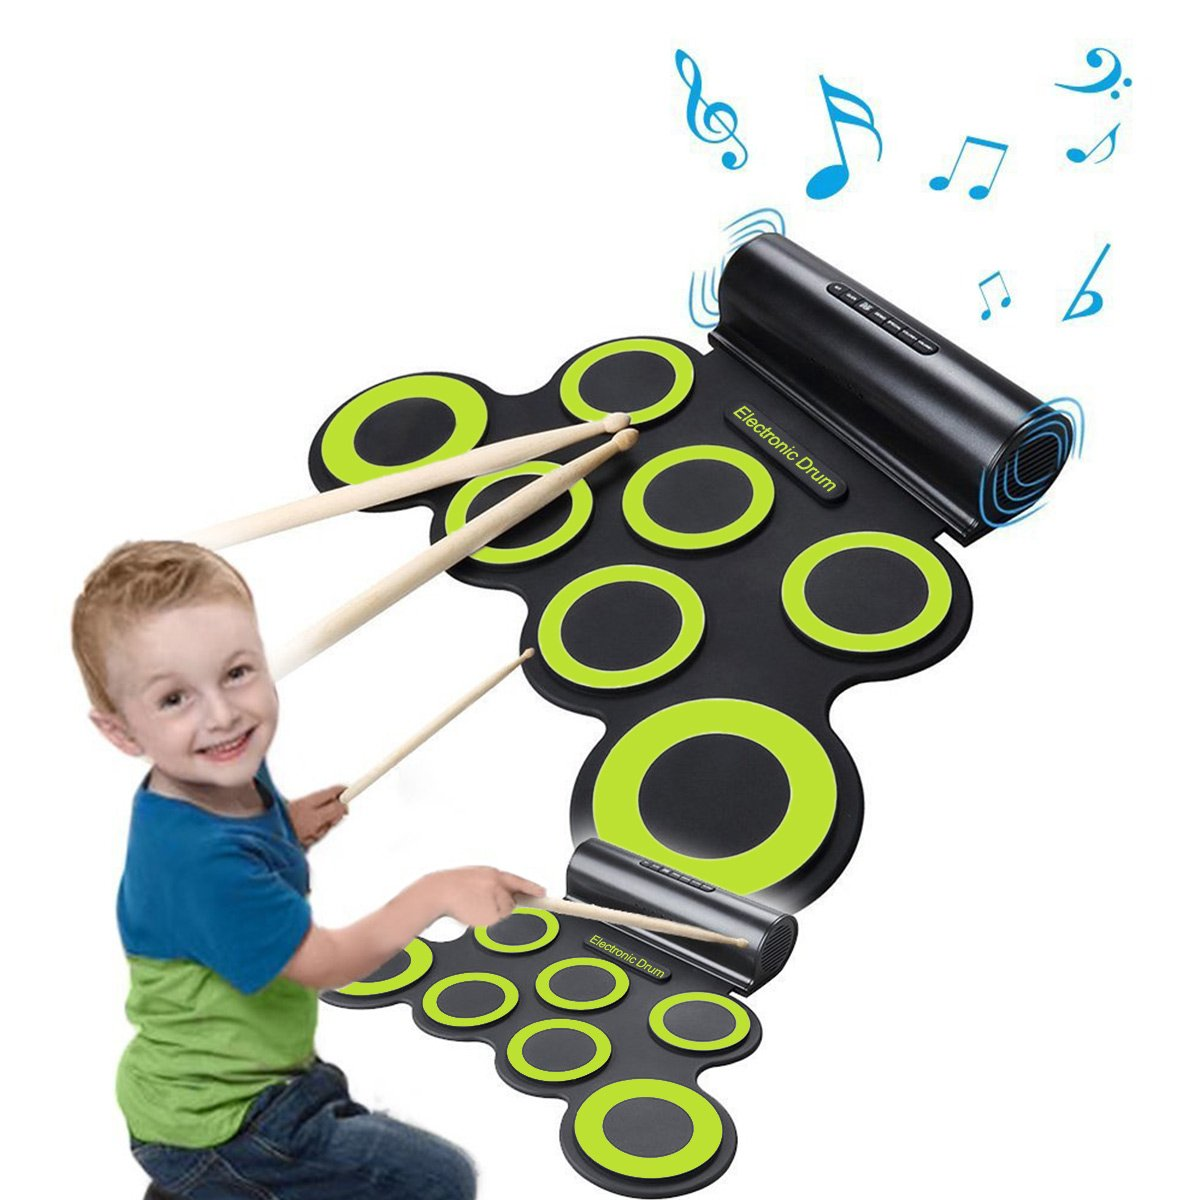 Rechargeable Electronic Roll-Up Drum Kit, Foldable Drum Set Built in Speaker With DrumSticks, Foot Pedals CoastaCloud 7 Drum Pads With Headphone Jack For Practice Starters Kids